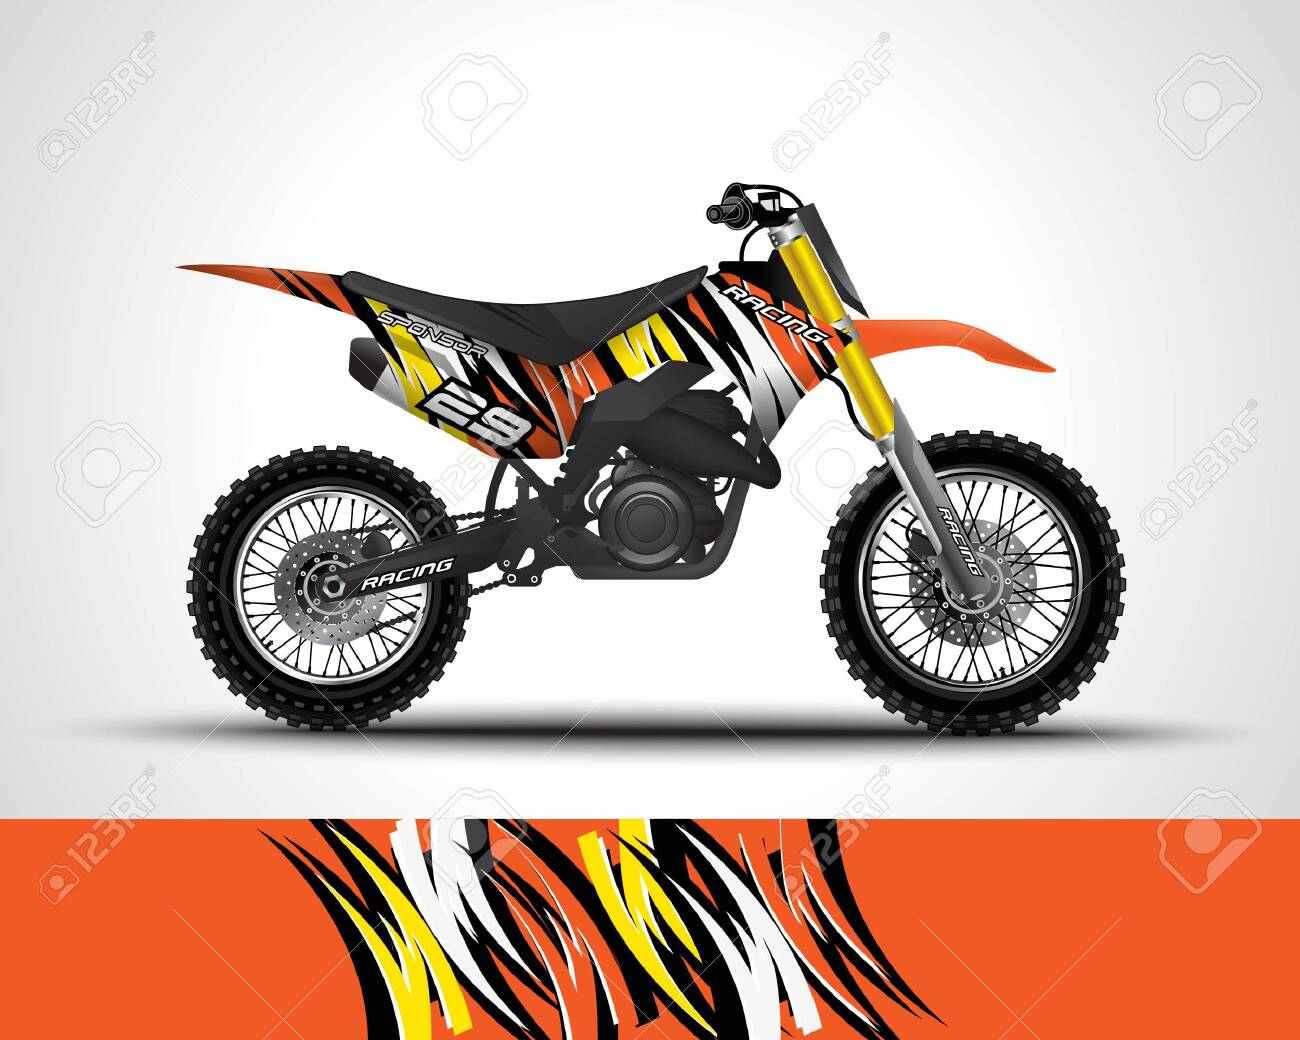 Motocross Wrap Decal And Vinyl Sticker Design Royalty Free Cliparts Vectors And Stock Illustration Image 146274896